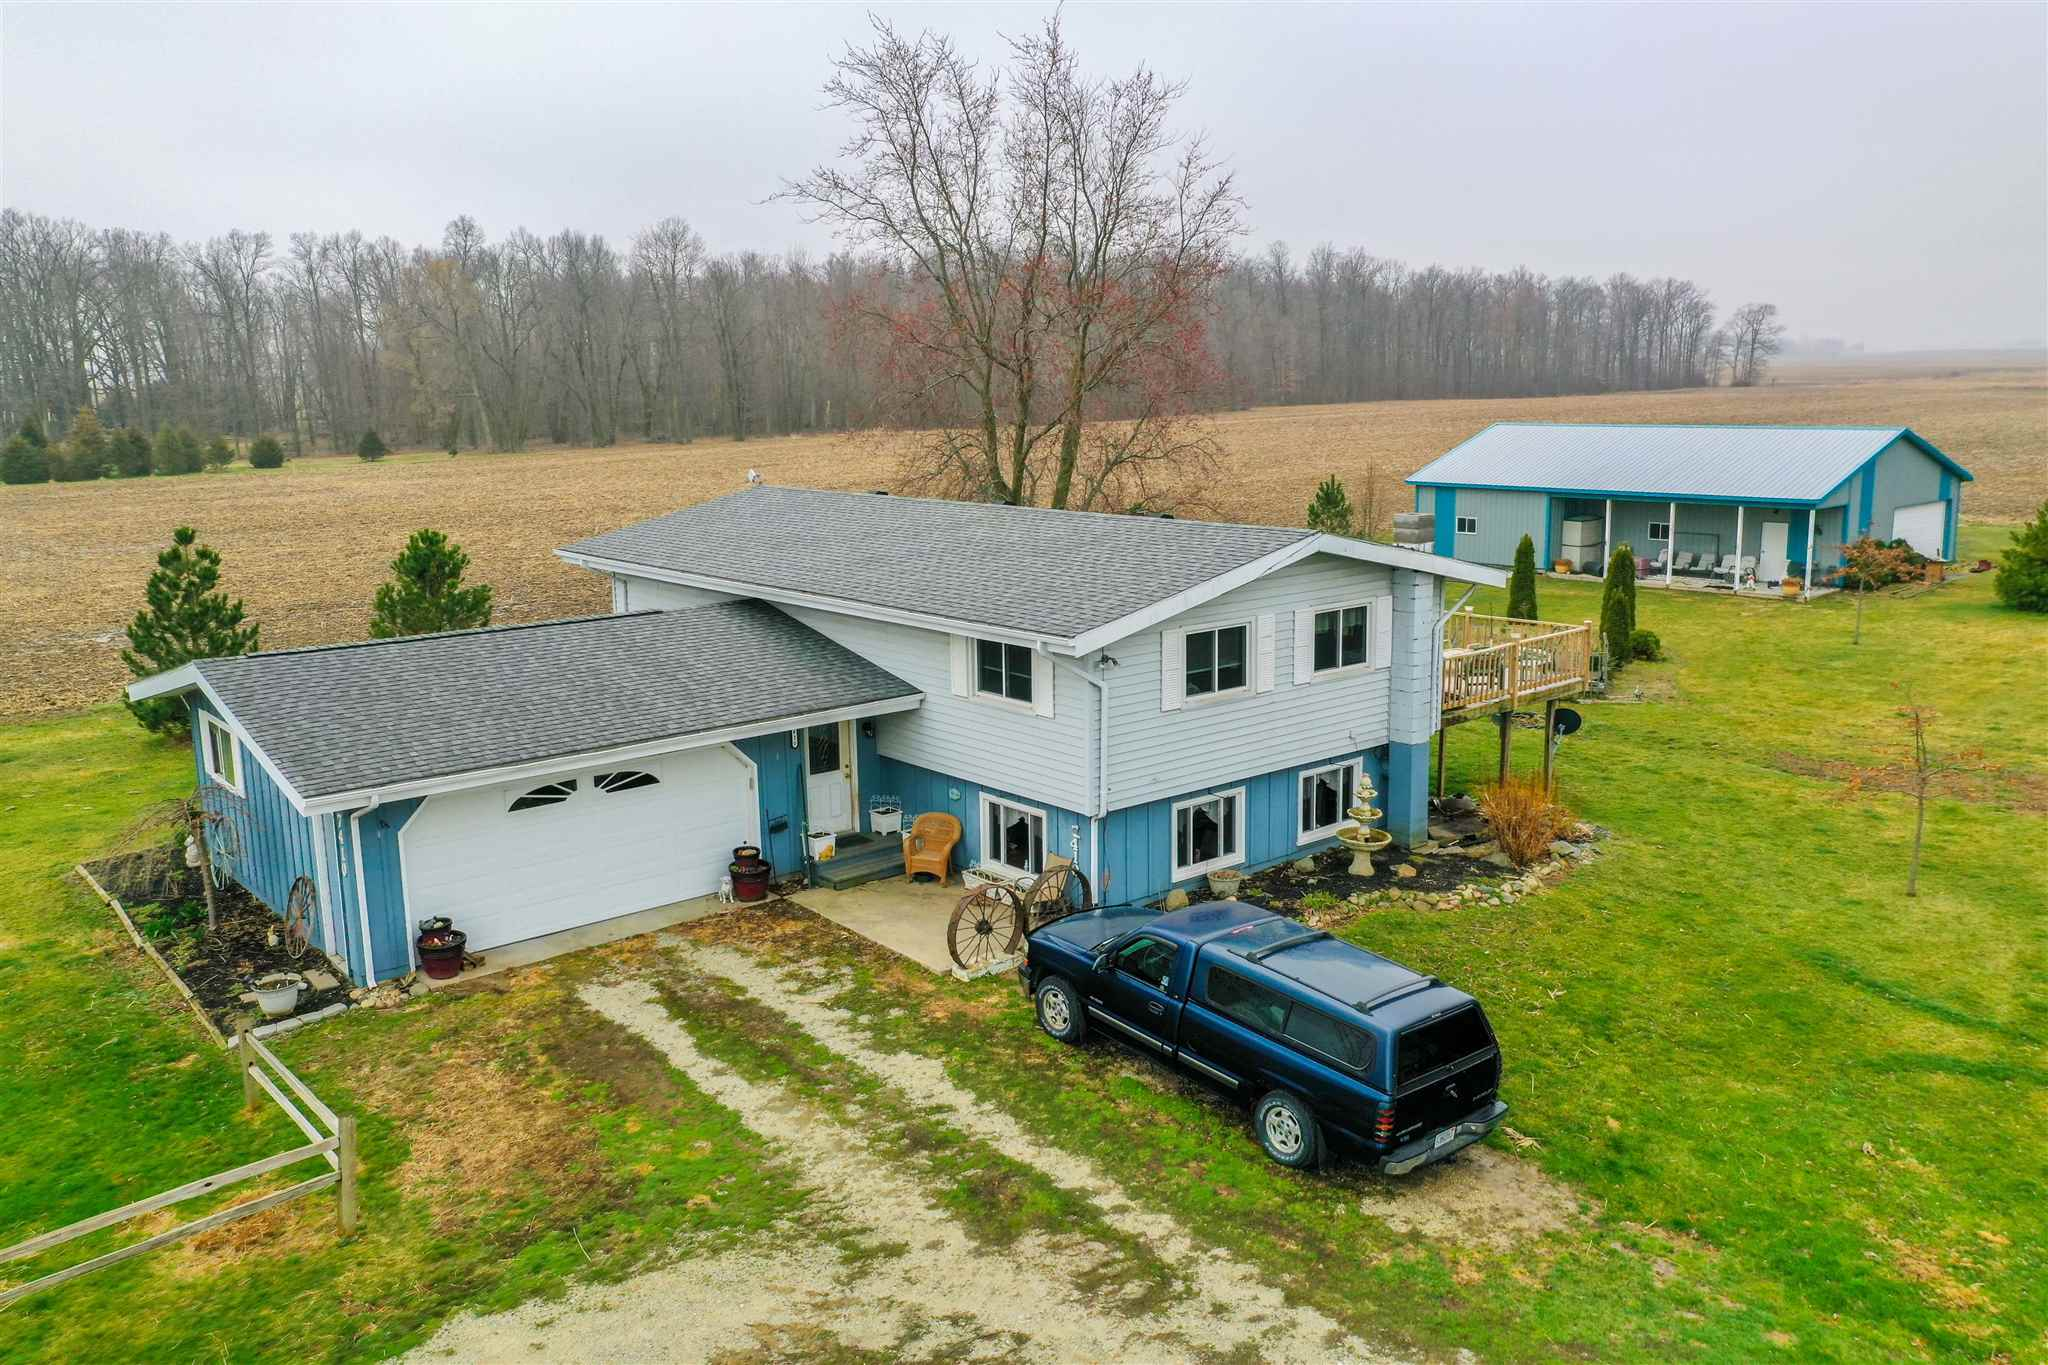 7410 S 450 W Road, South Whitley, IN 46787